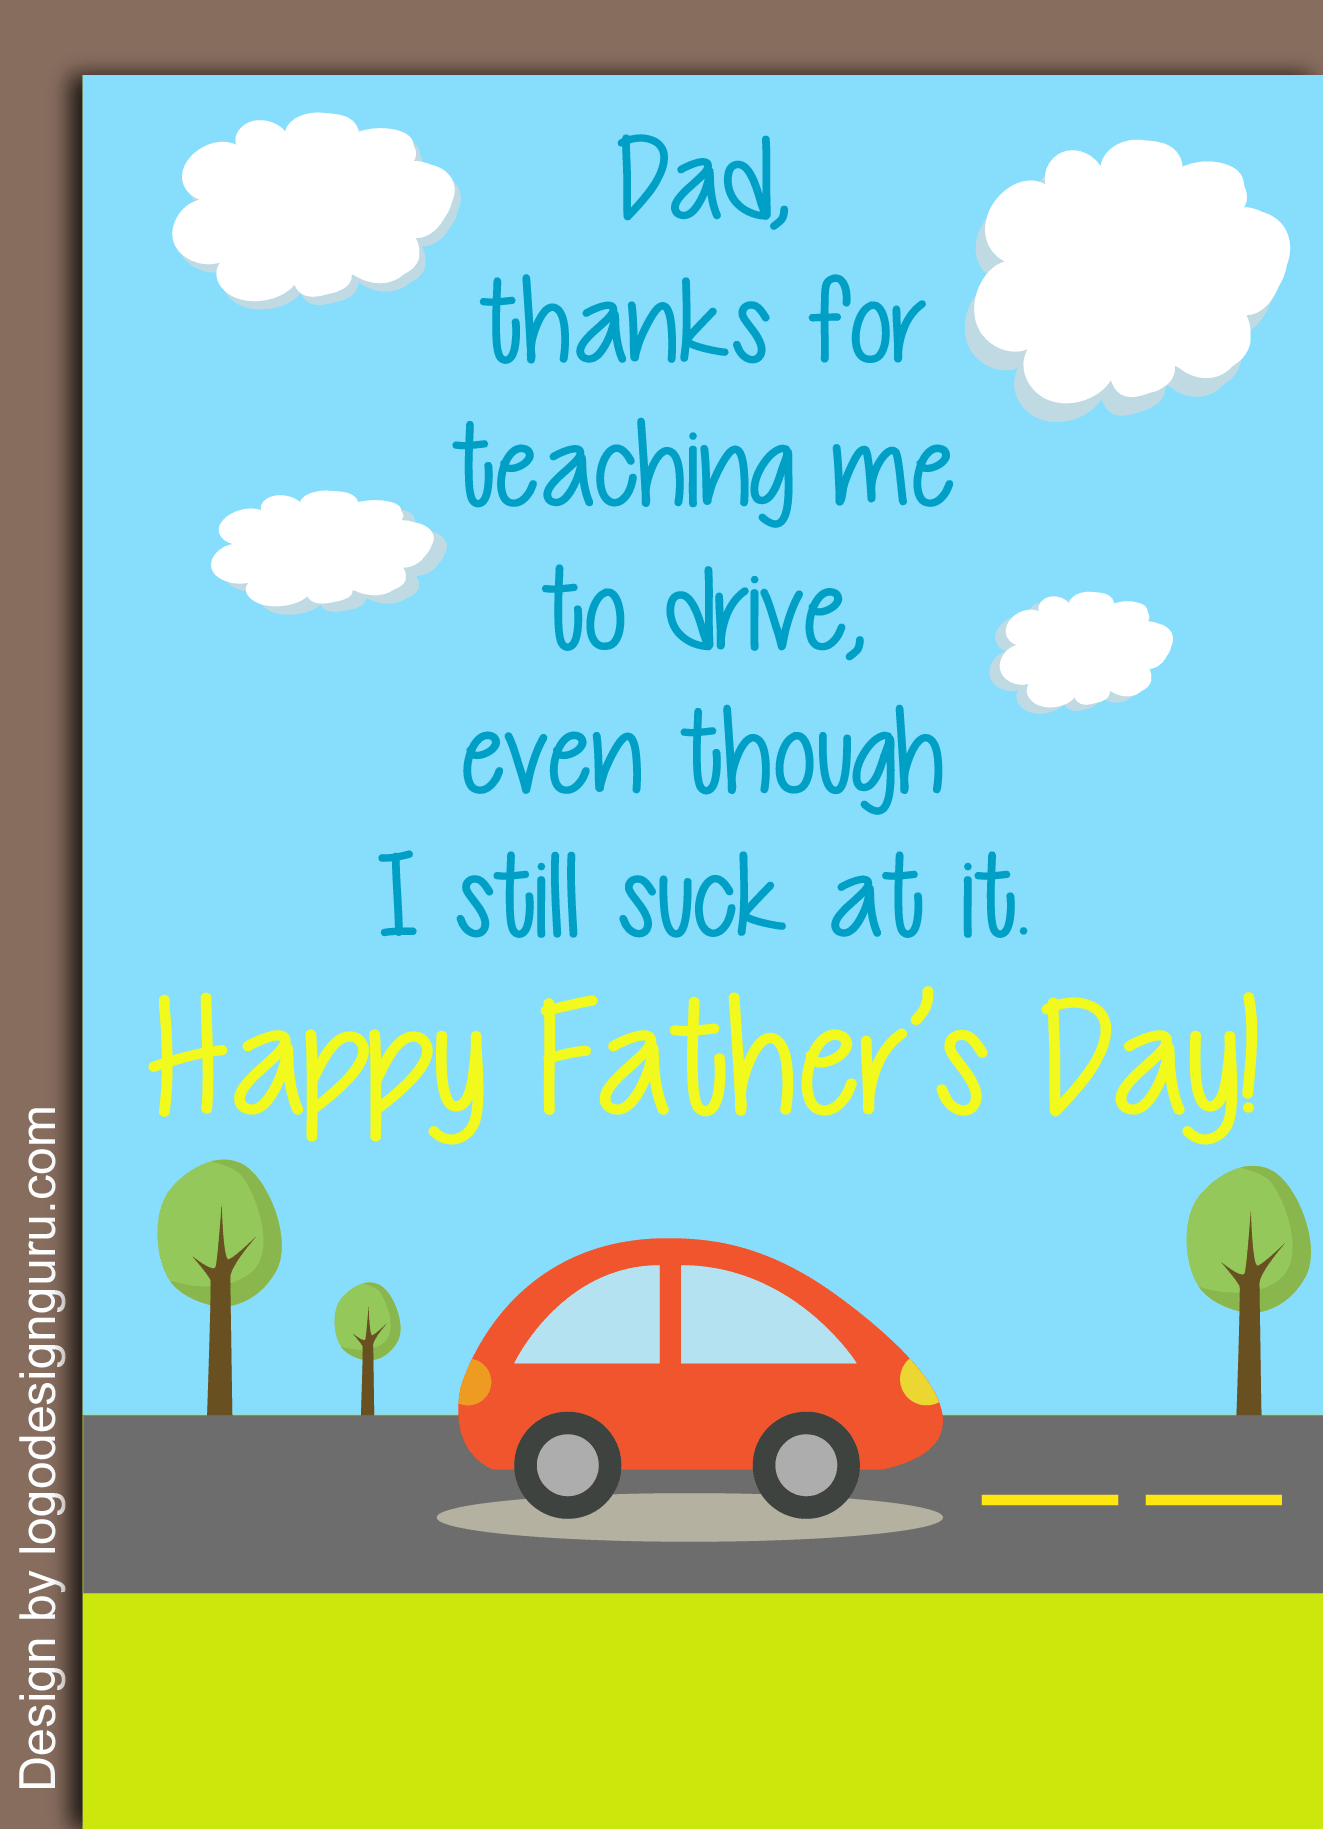 10 quirky fathers day greeting card ideas will you learn driving 10 quirky fathers day greeting card ideas will you learn driving from your dad click the image to get a custom design kristyandbryce Gallery